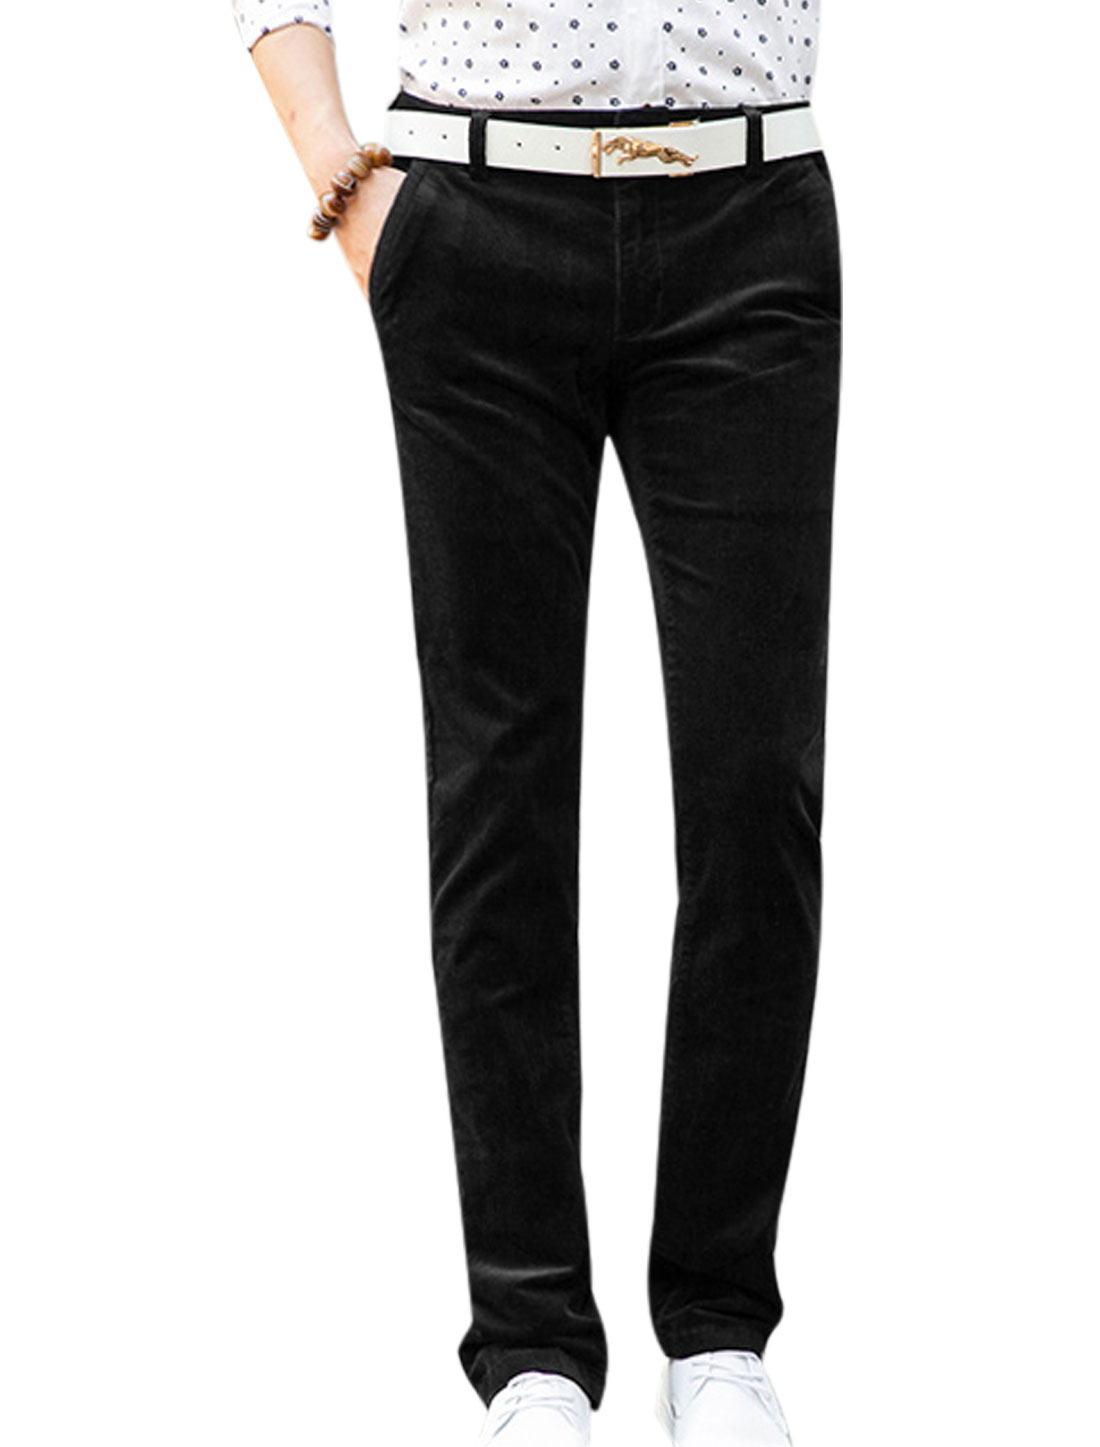 Man Zip Fly Button Closed Pocket Sides Corduroy Pants Black W32